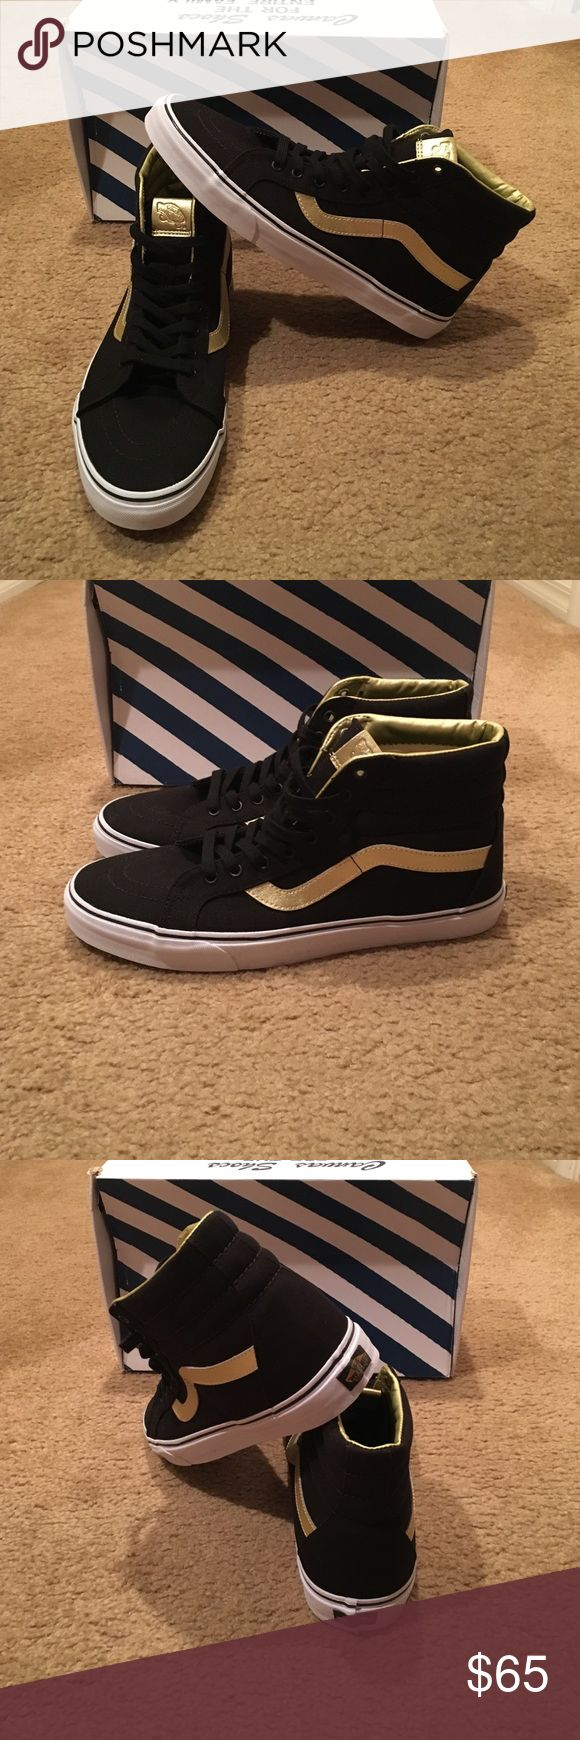 Vans Sk8-Hi Reissue 50th Sneakers VN0004OKJ9A New in box. Unisex. Black/Gold Vans Shoes Sneakers